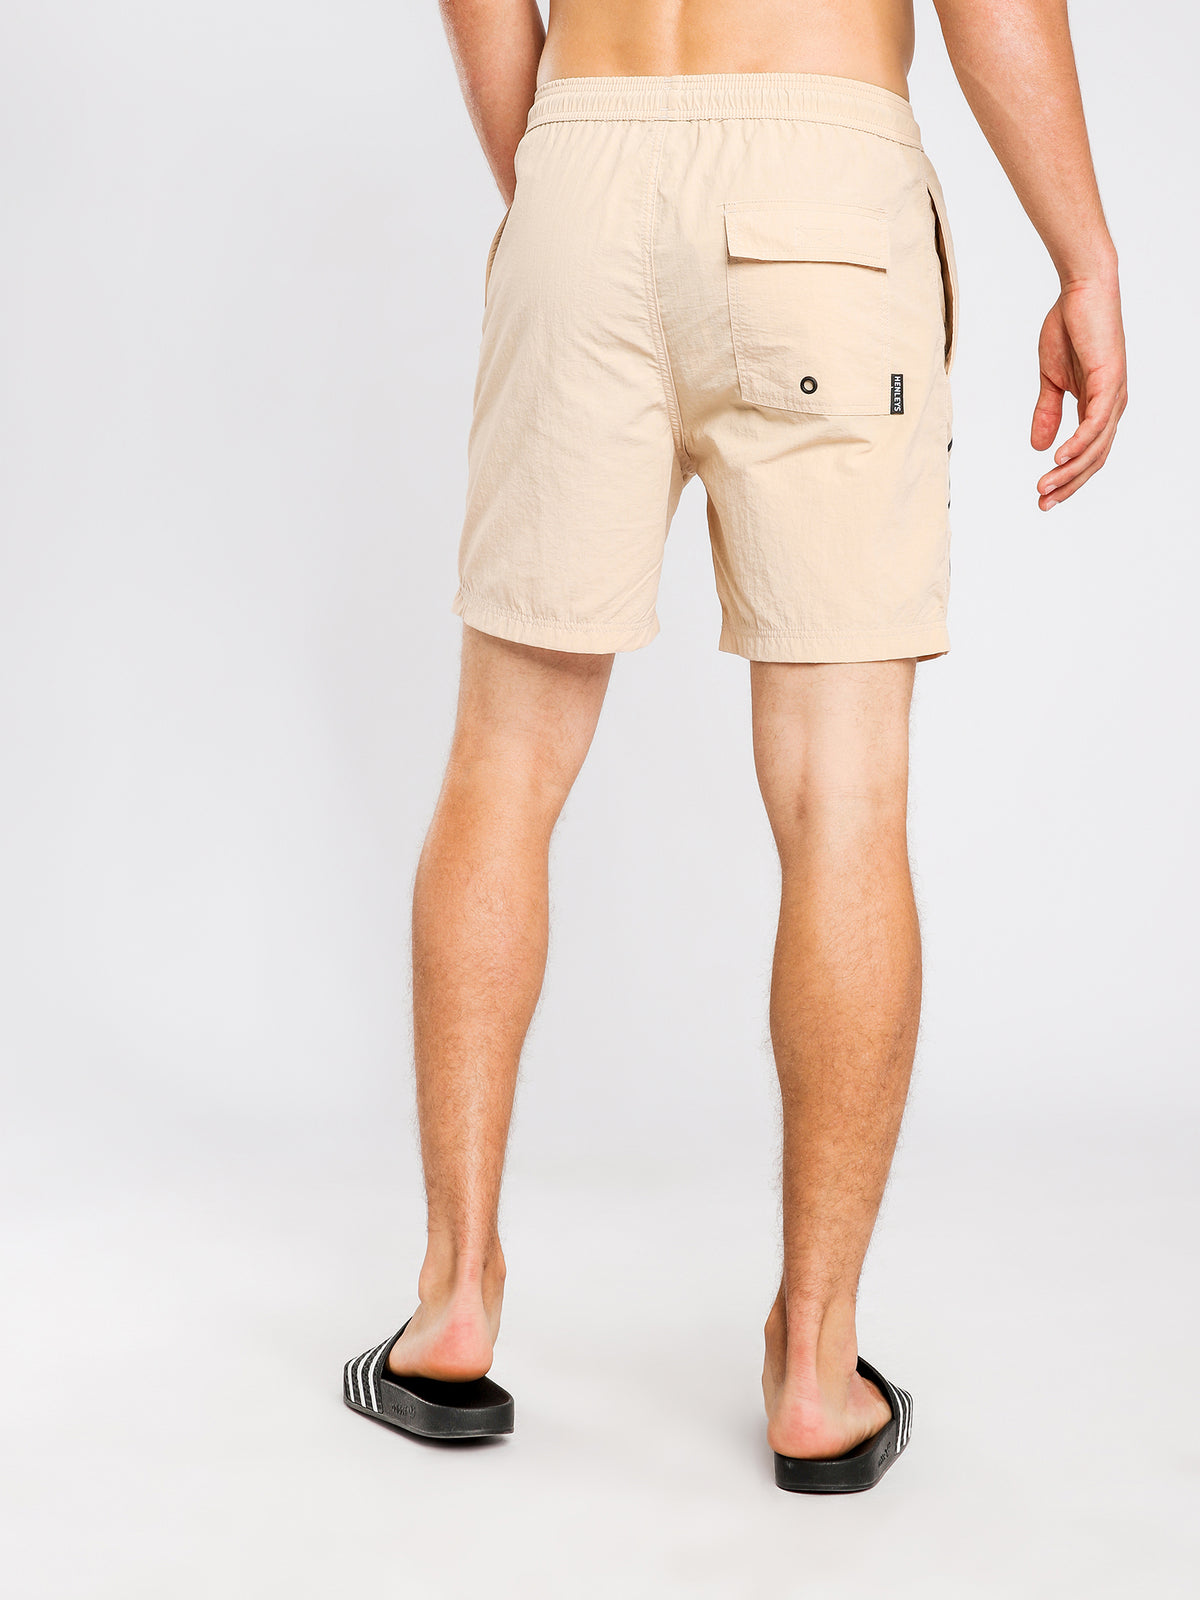 Chester Shorts in Sand